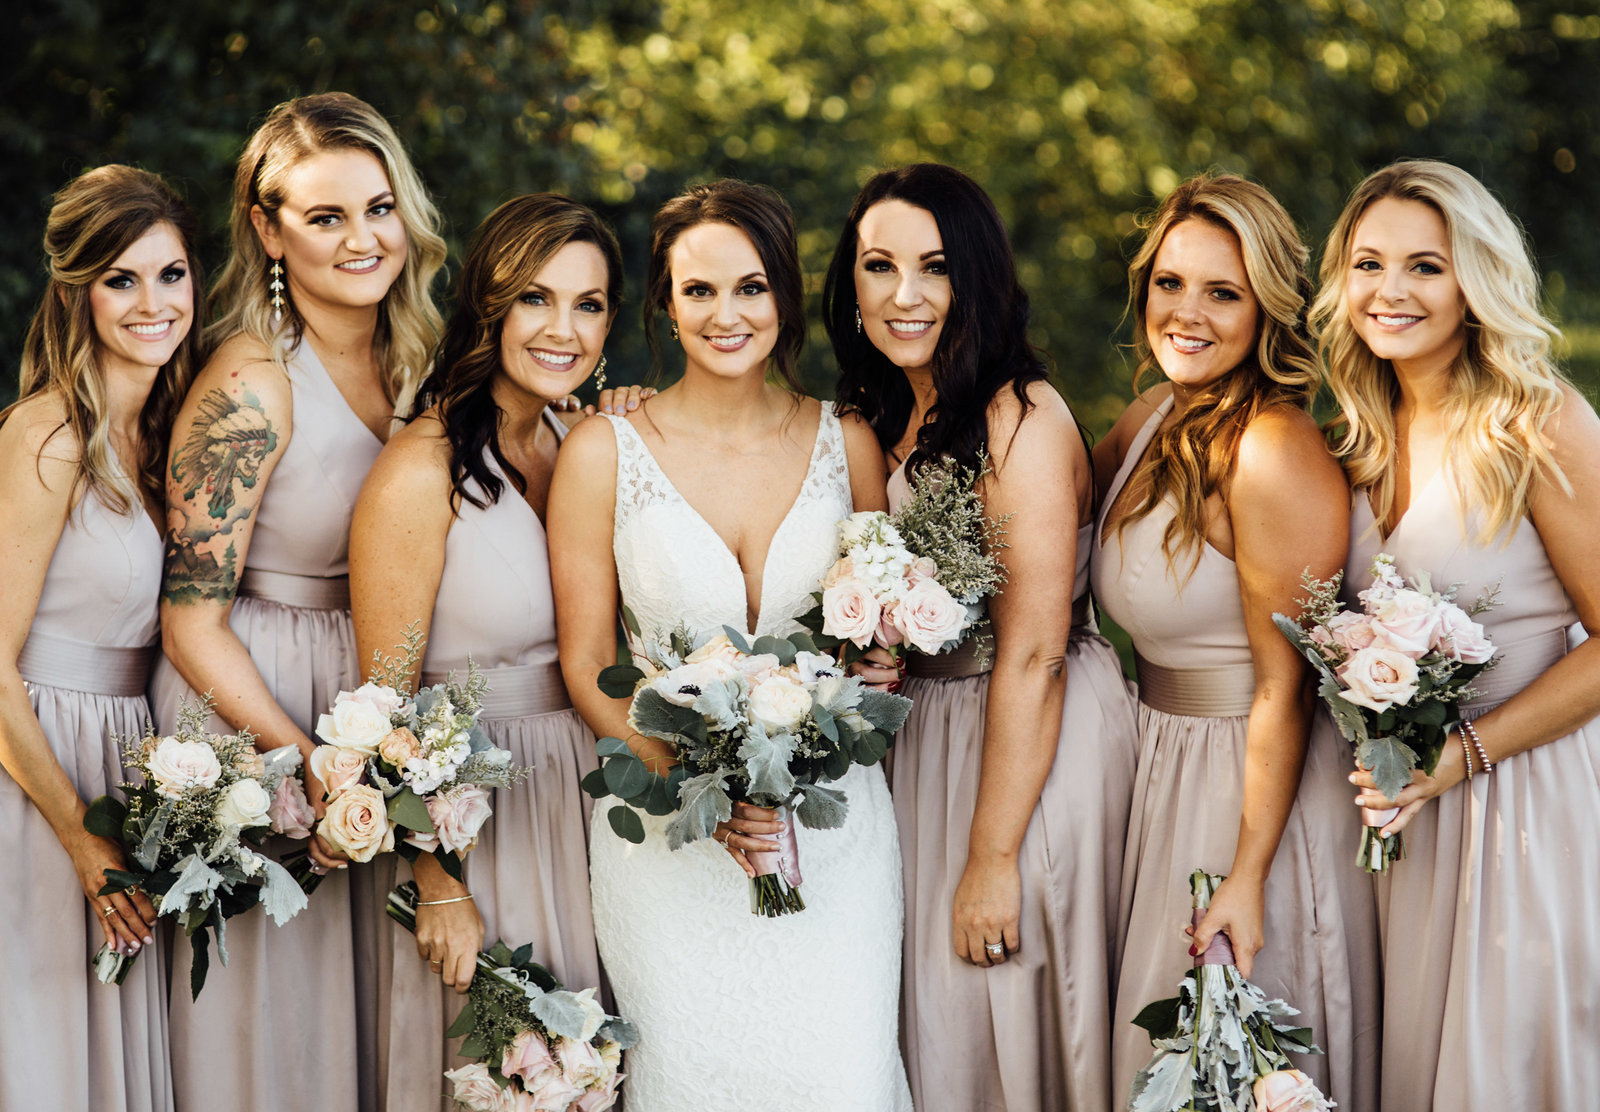 Nashville bride with bridesmaids outdoor, sunny group portrait